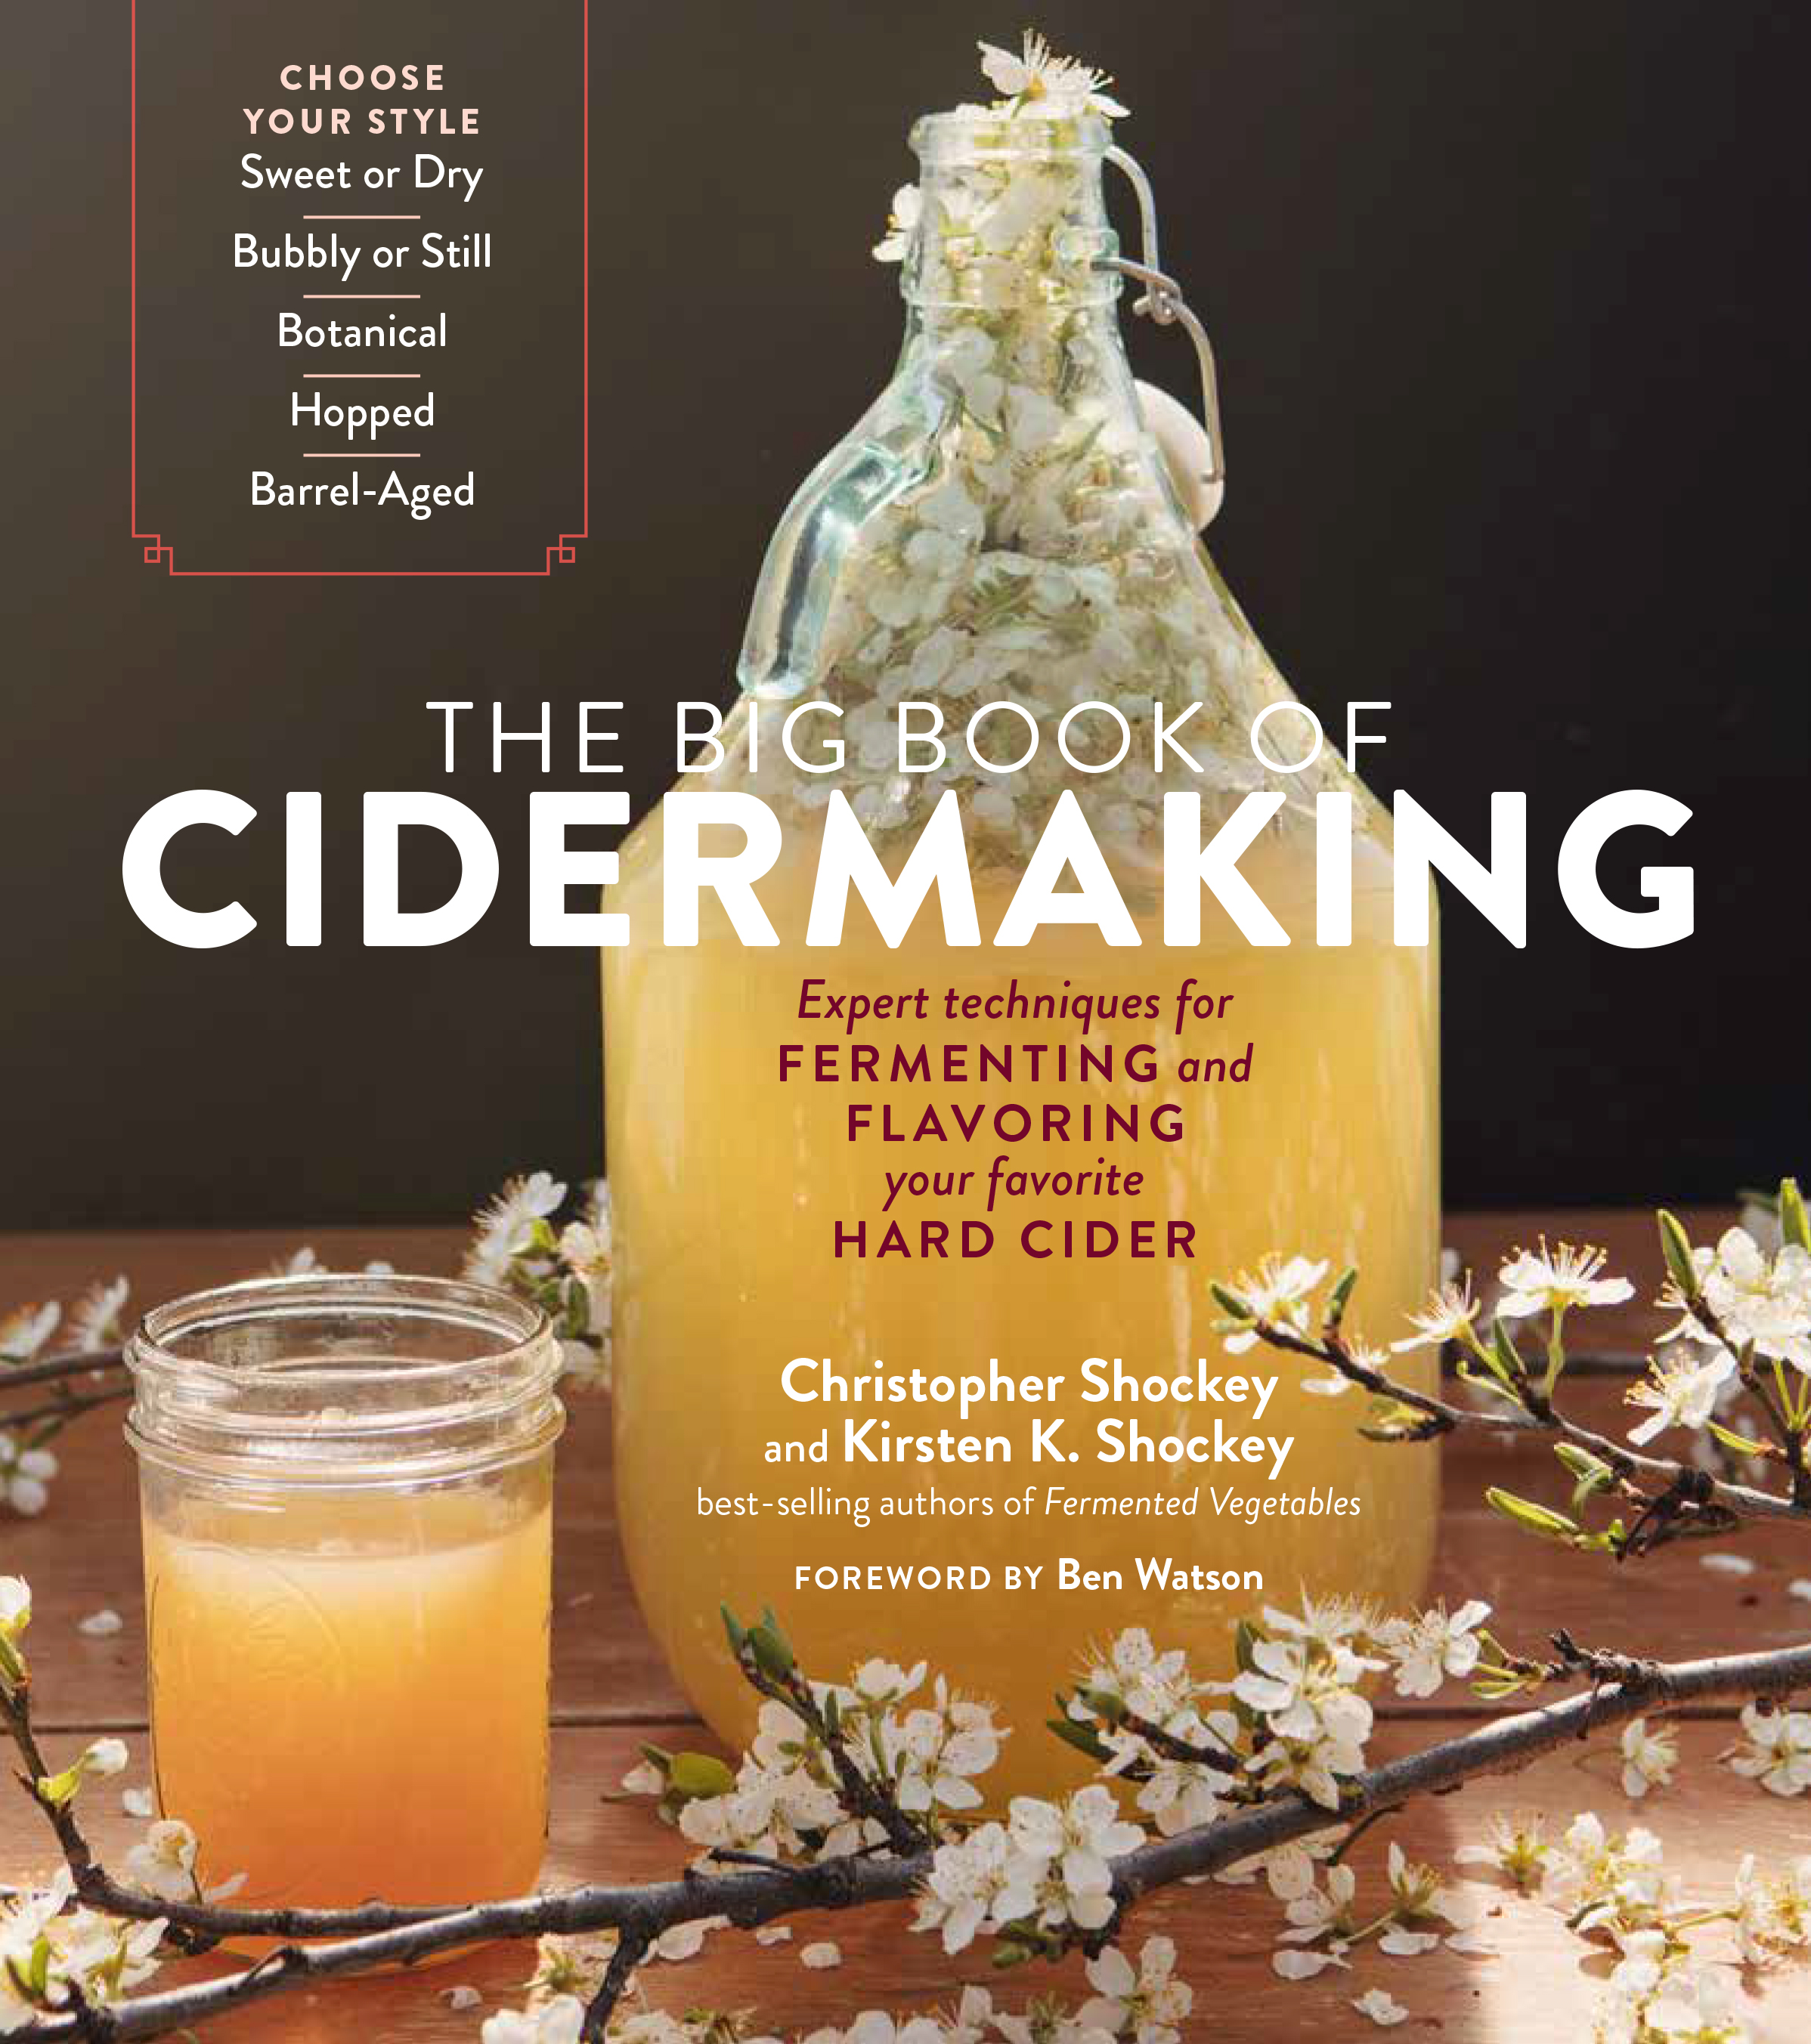 The Big Book of Cidermaking Expert Techniques for Fermenting and Flavoring Your Favorite Hard Cider - Christopher Shockey